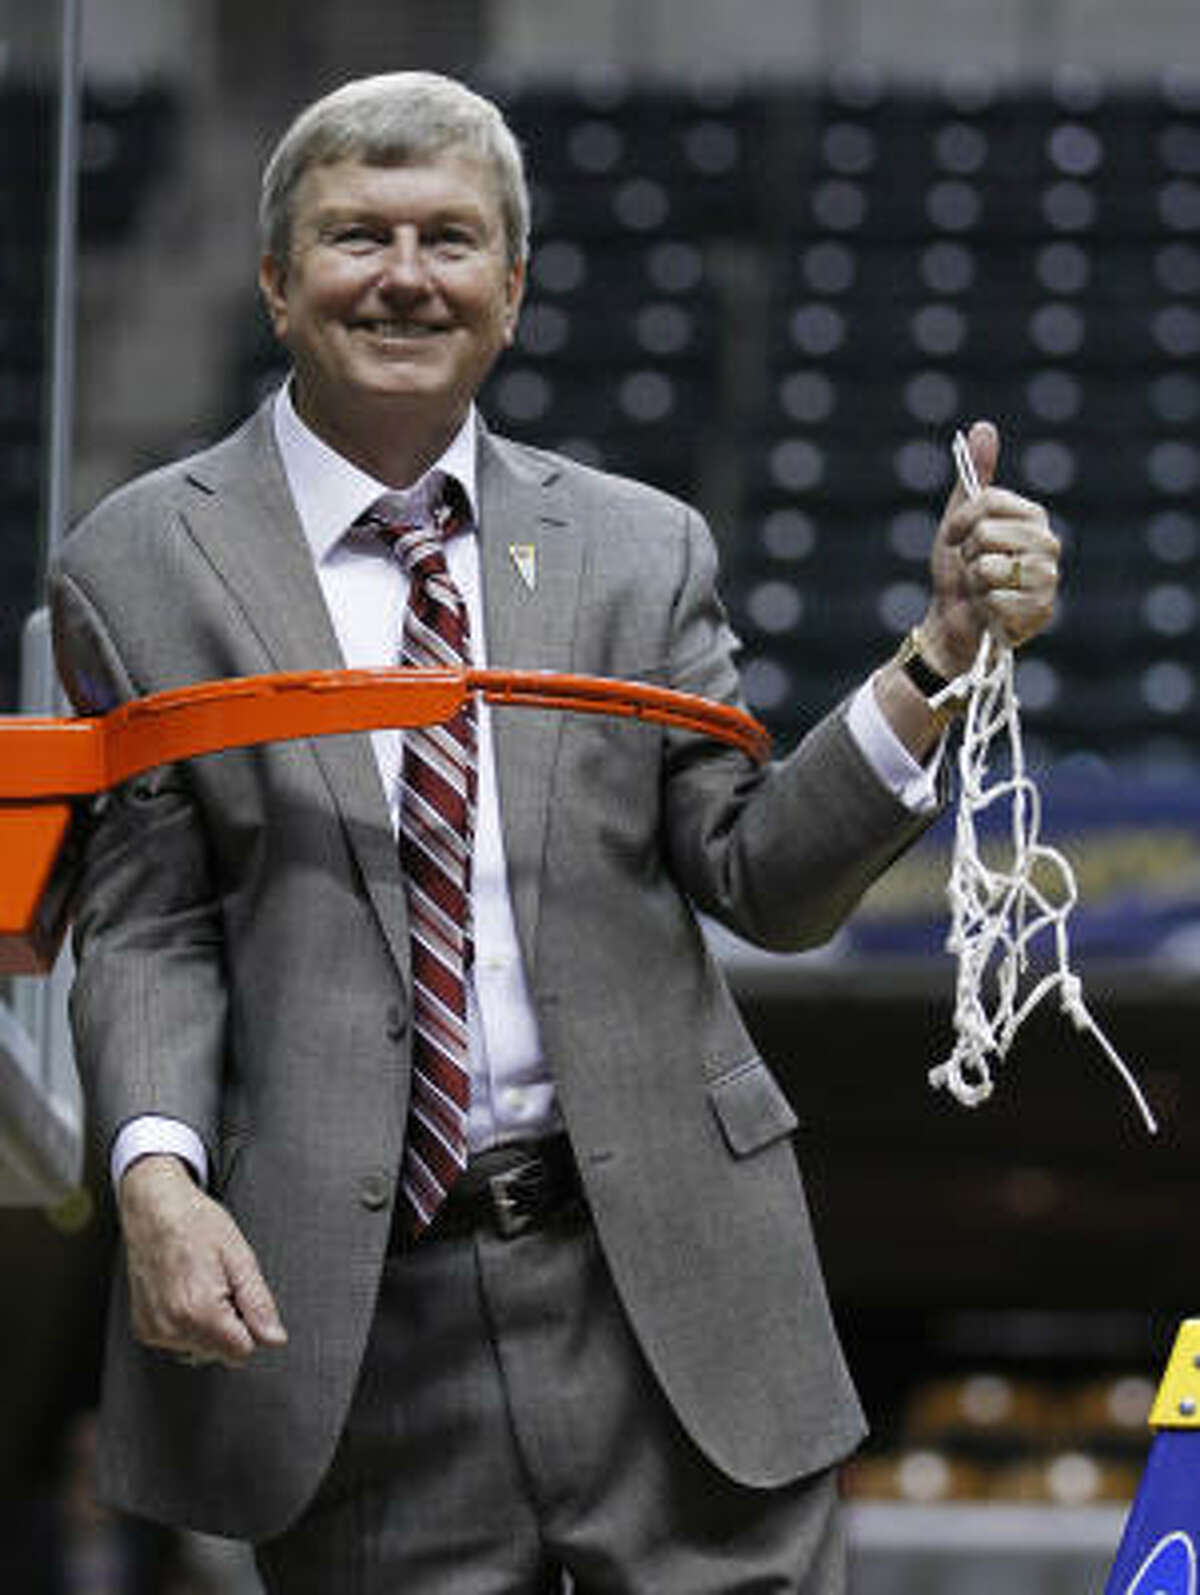 Texas A&M head coach Gary Blair stands inside the hoop after cutting the net after his team's 76-70 win over Notre Dame in the women's NCAA championship game in Indianapolis on Tuesday.